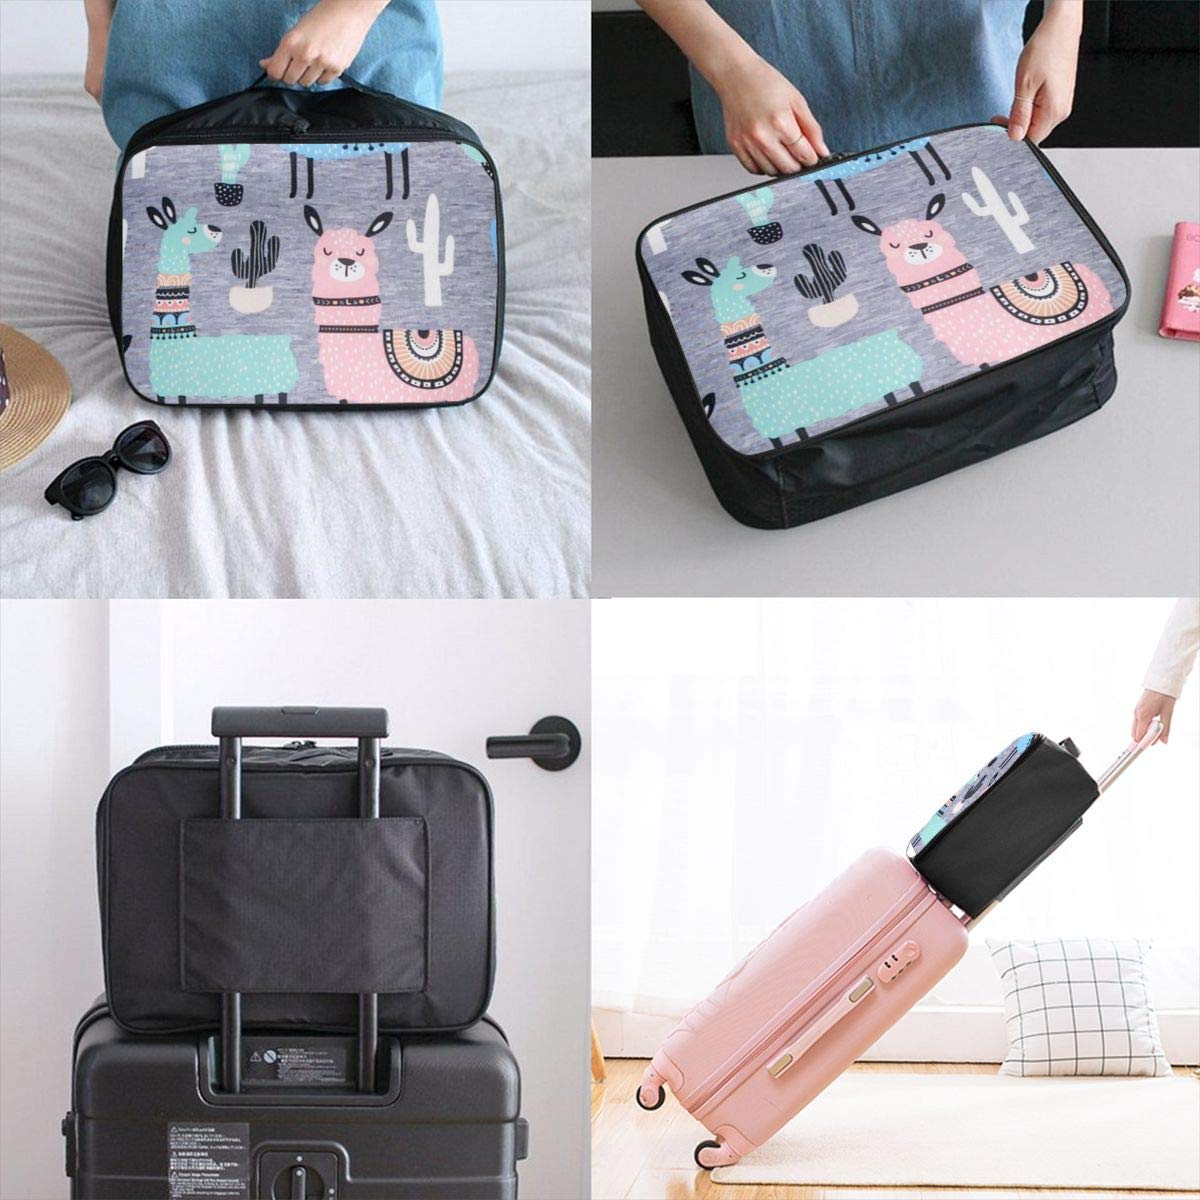 Several Cartoon Llama Travel Lightweight Waterproof Folding Storage Carry Luggage Duffle Tote Bag Large Capacity In Trolley Handle Bags 6x11x15 Inch